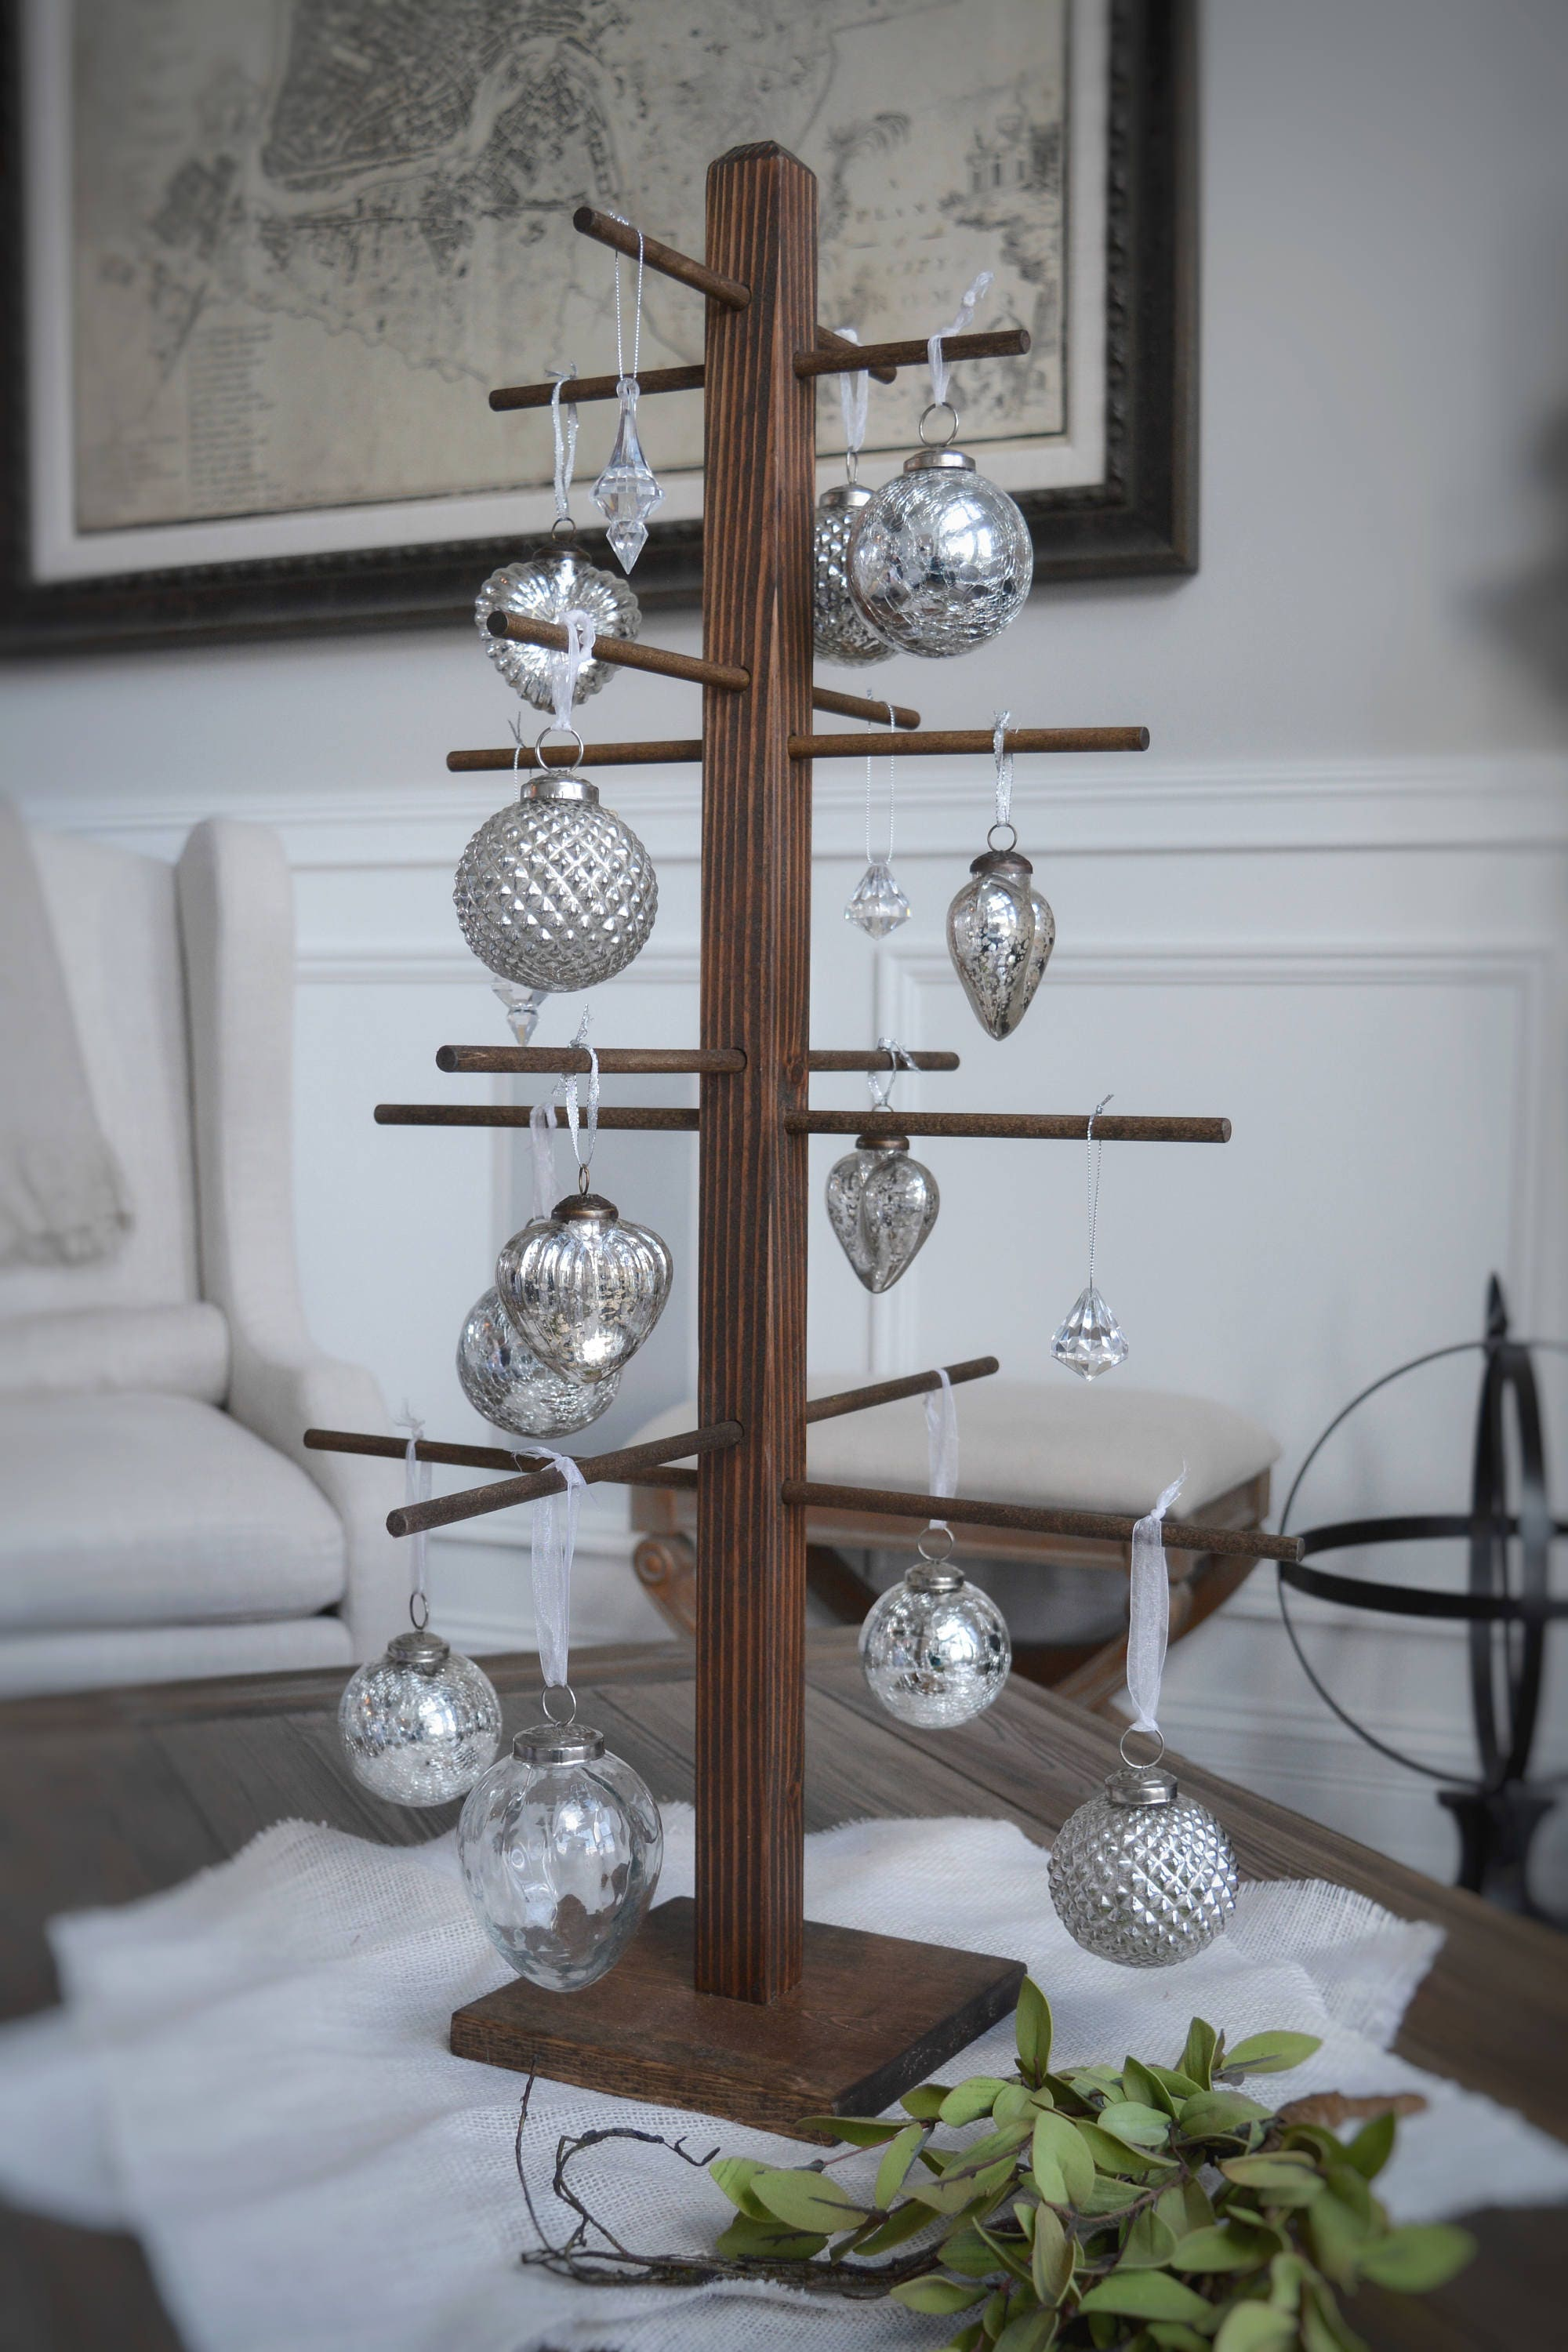 Rustic Stained Christmas Tree Ornament Holder Display ...